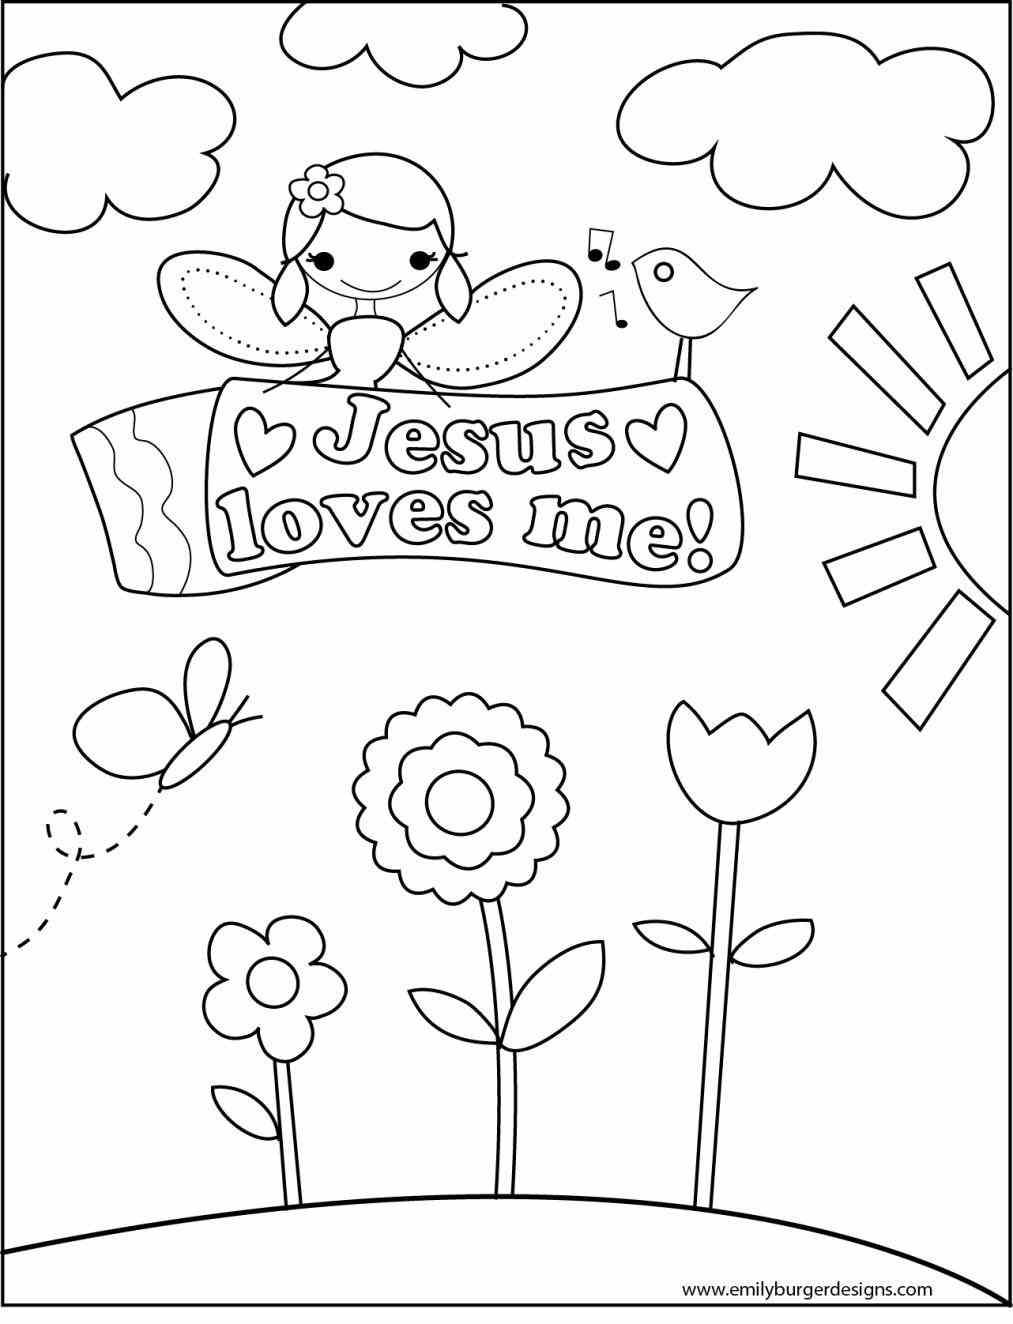 Little Children At Amazing Jesus Coloring Sheet As Well Gorgeous Jesus Loves The Little C Jesus Coloring Pages Love Coloring Pages Sunday School Coloring Pages